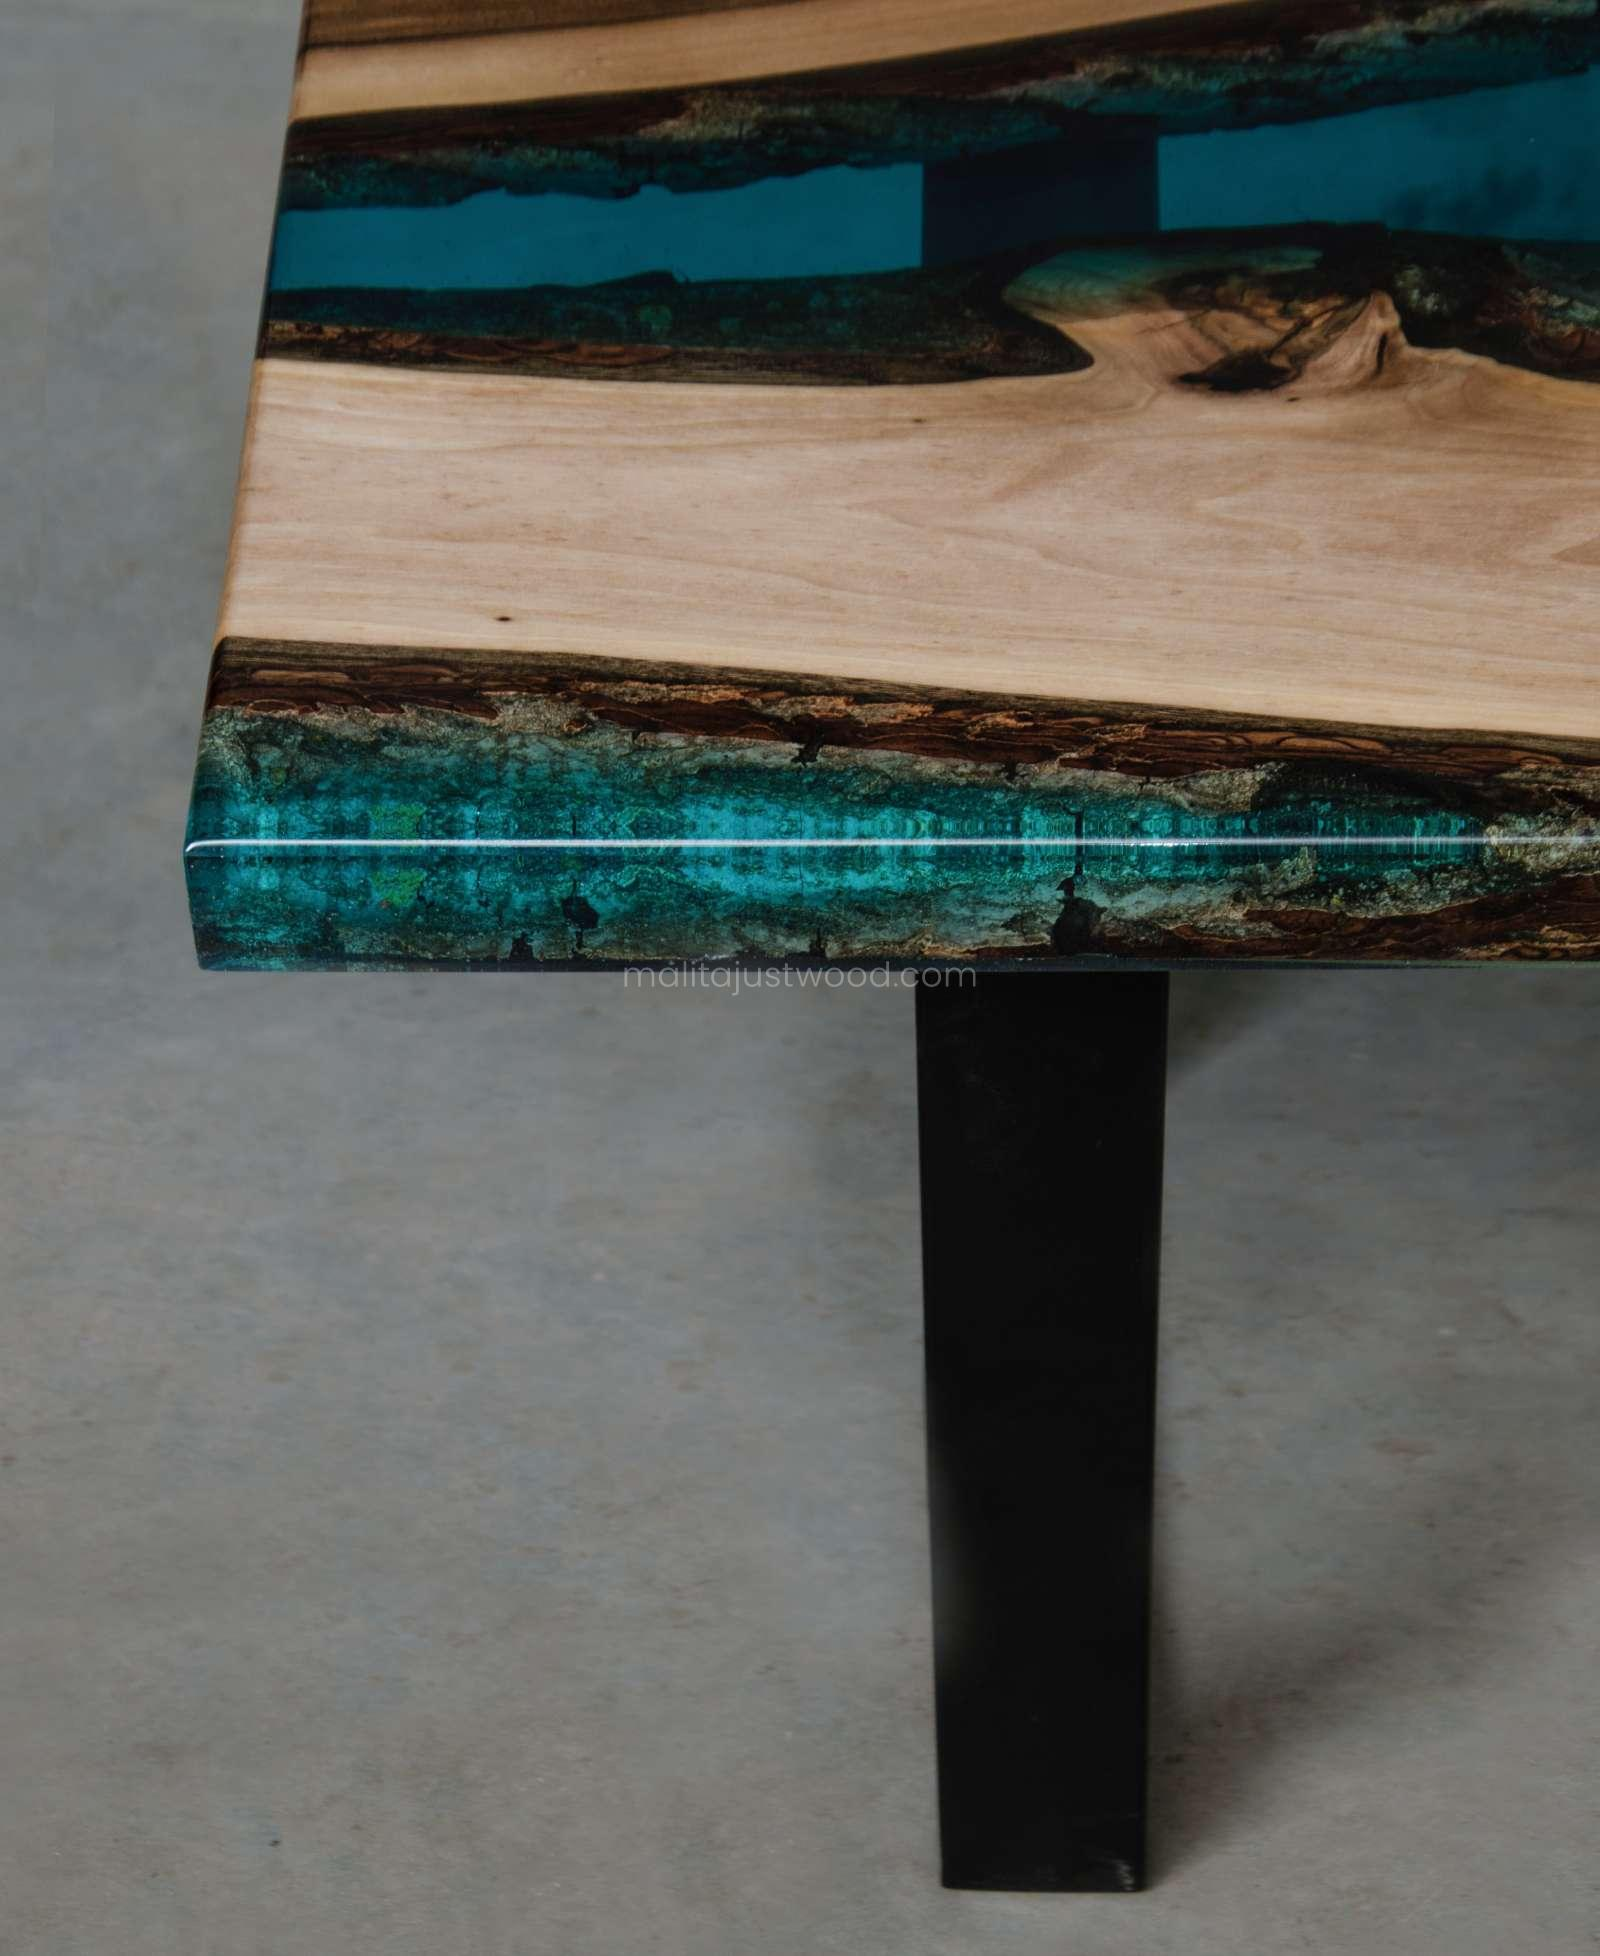 Mare coffee table made of wood and epoxy resin